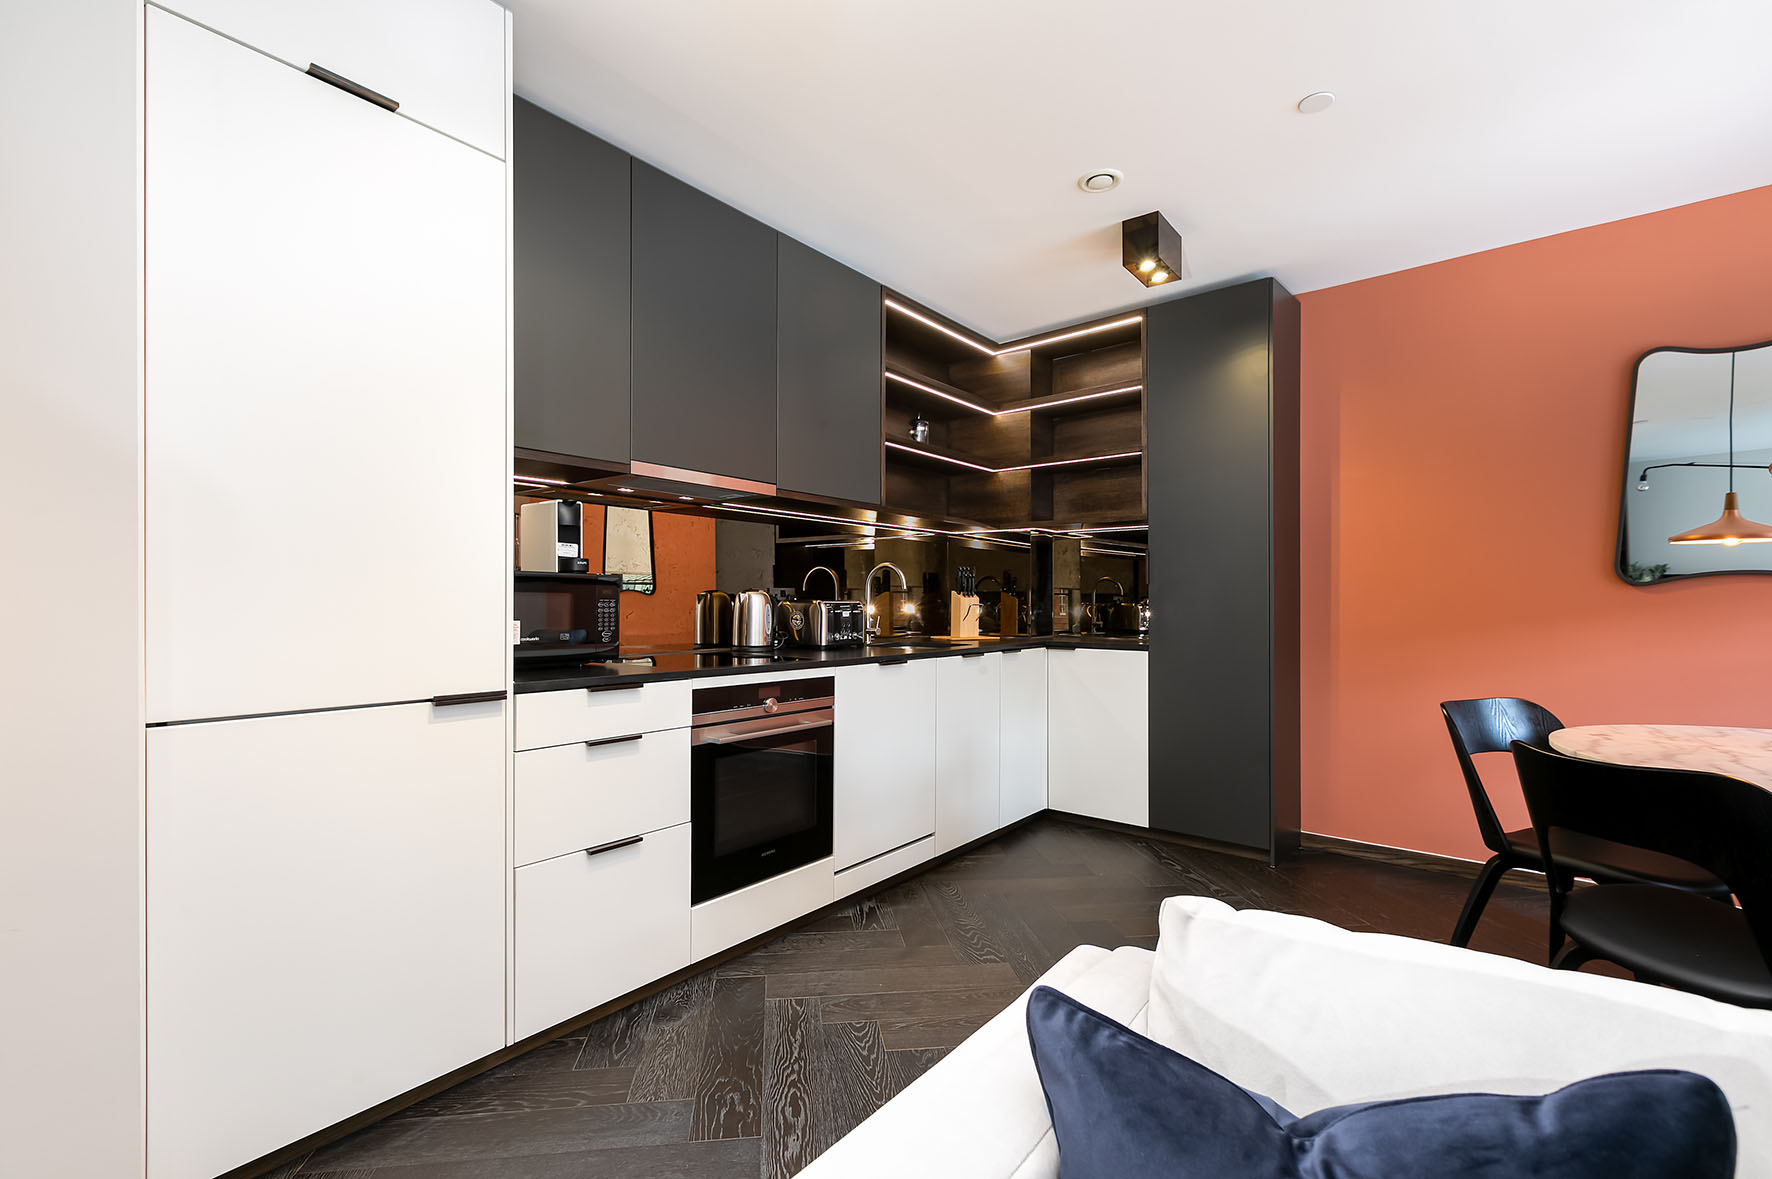 Lovelydays luxury service apartment rental - London - Soho - Noel Street VII - Lovelysuite - 1 bedrooms - 1 bathrooms - Luxury kitchen - 342912389943 - Lovelydays